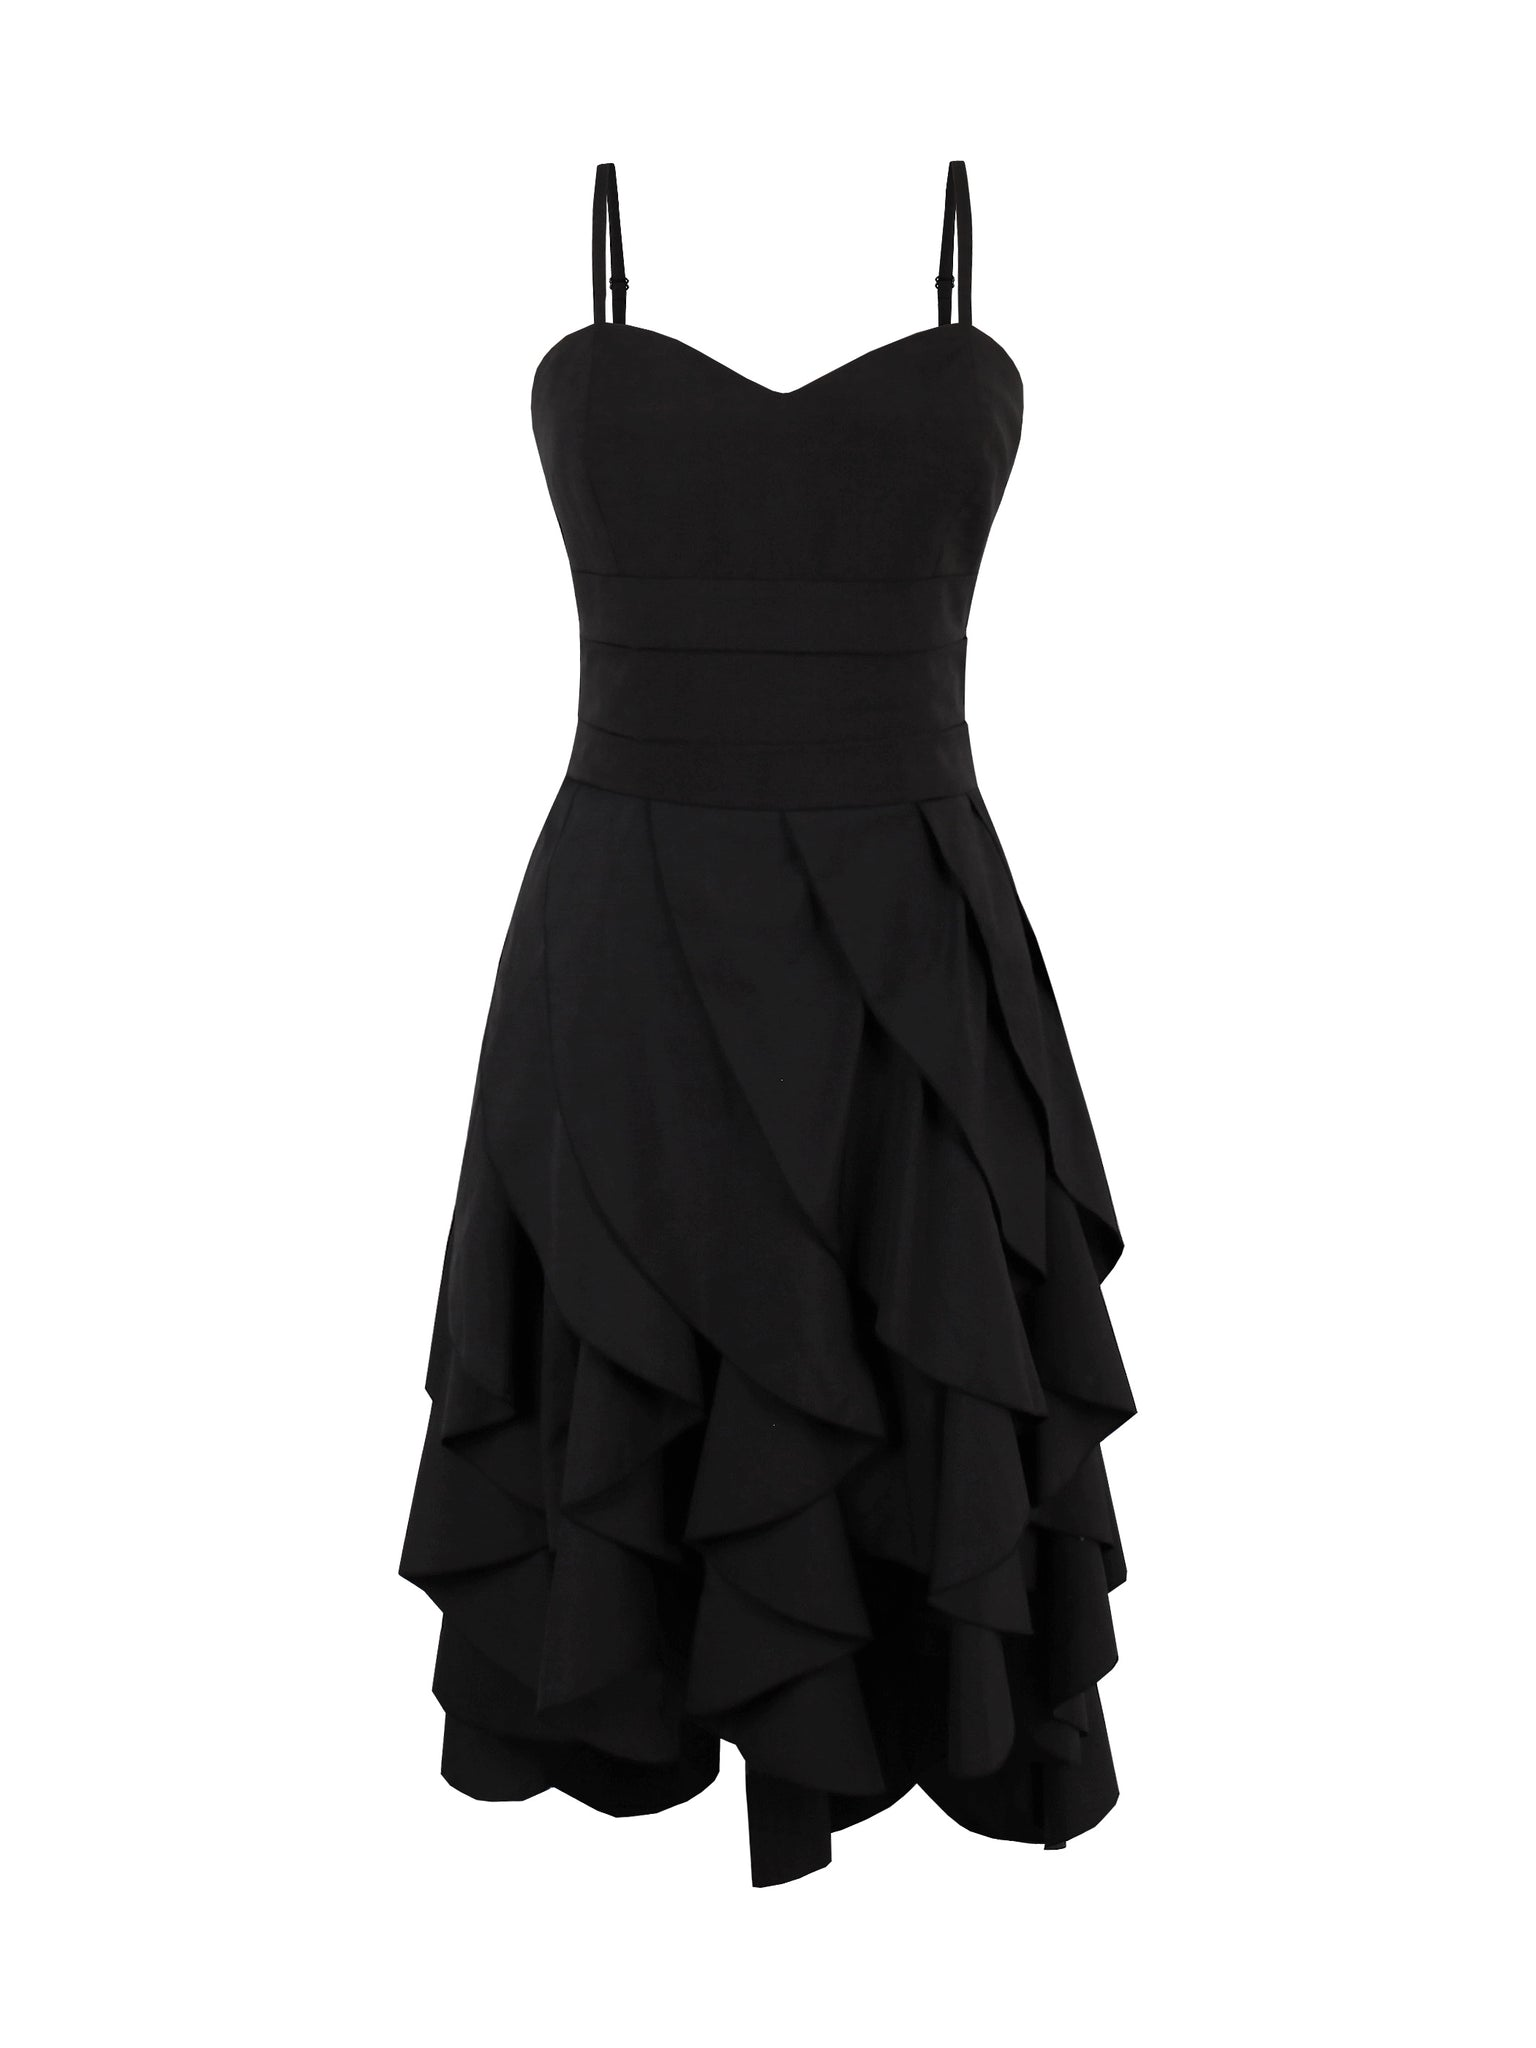 Chicloth Black Thin String Lotus Leaf Dress